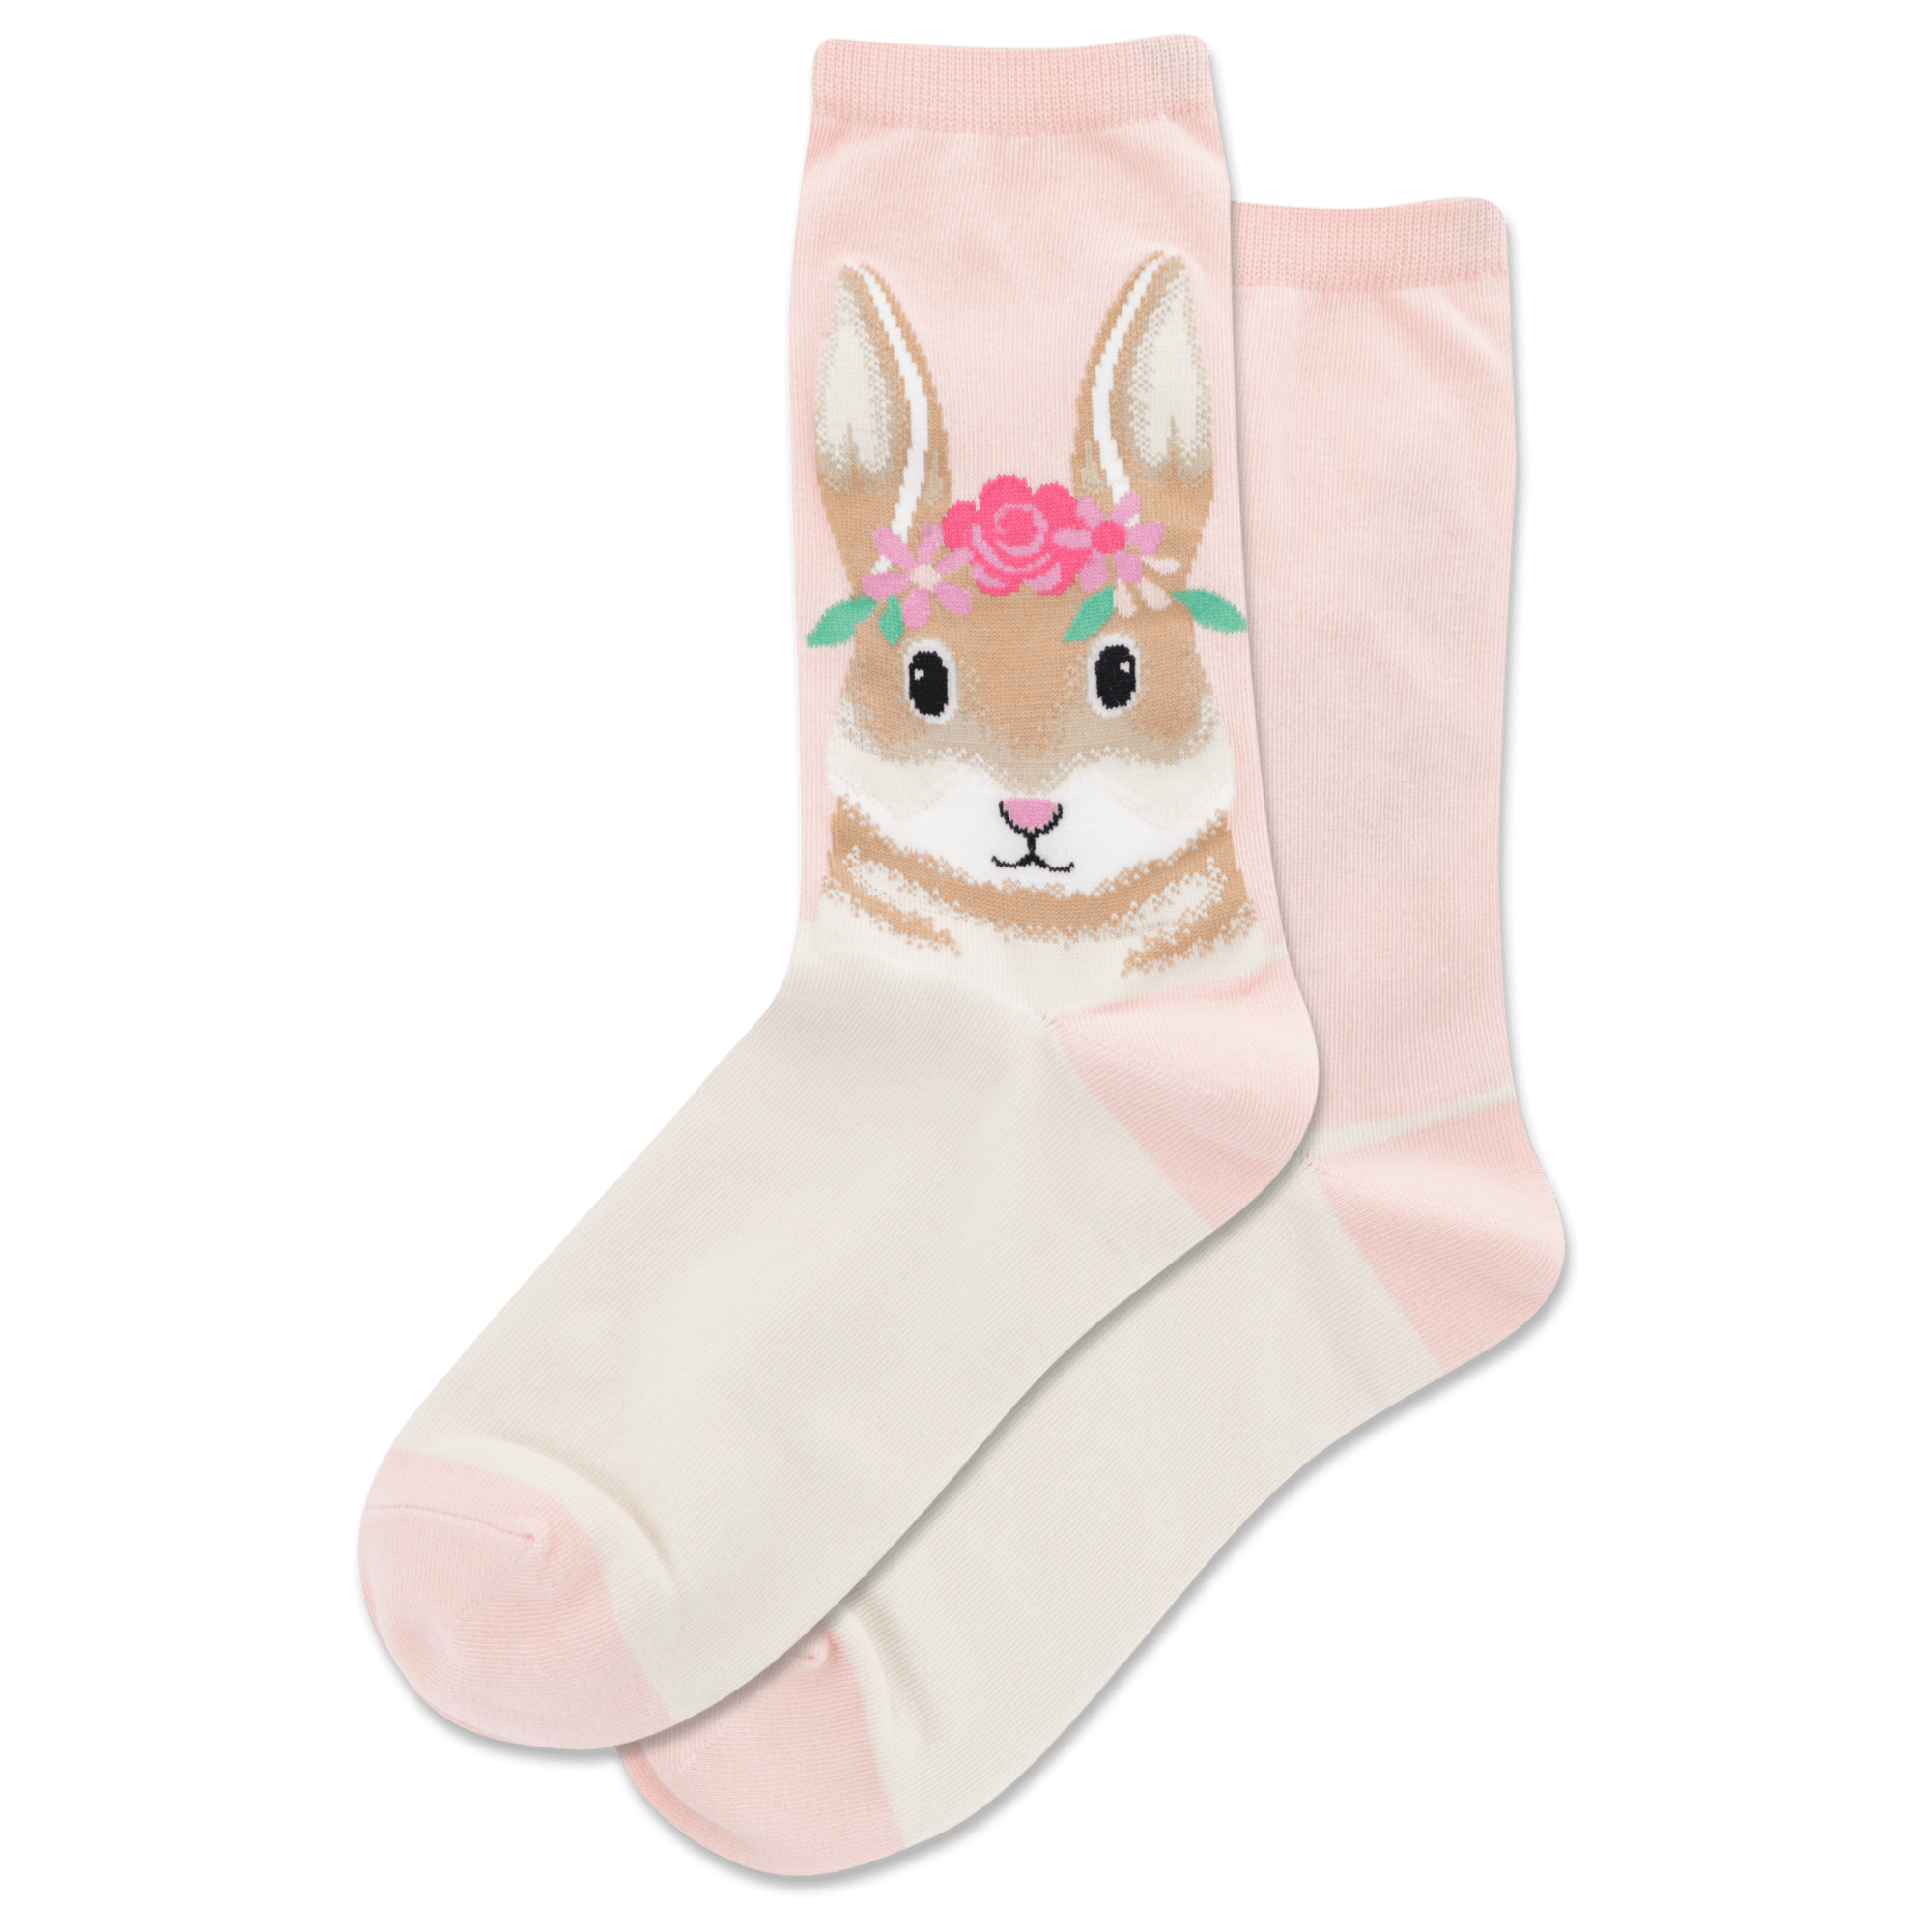 Flower Crown Bunny Women's Crew Sock Blush